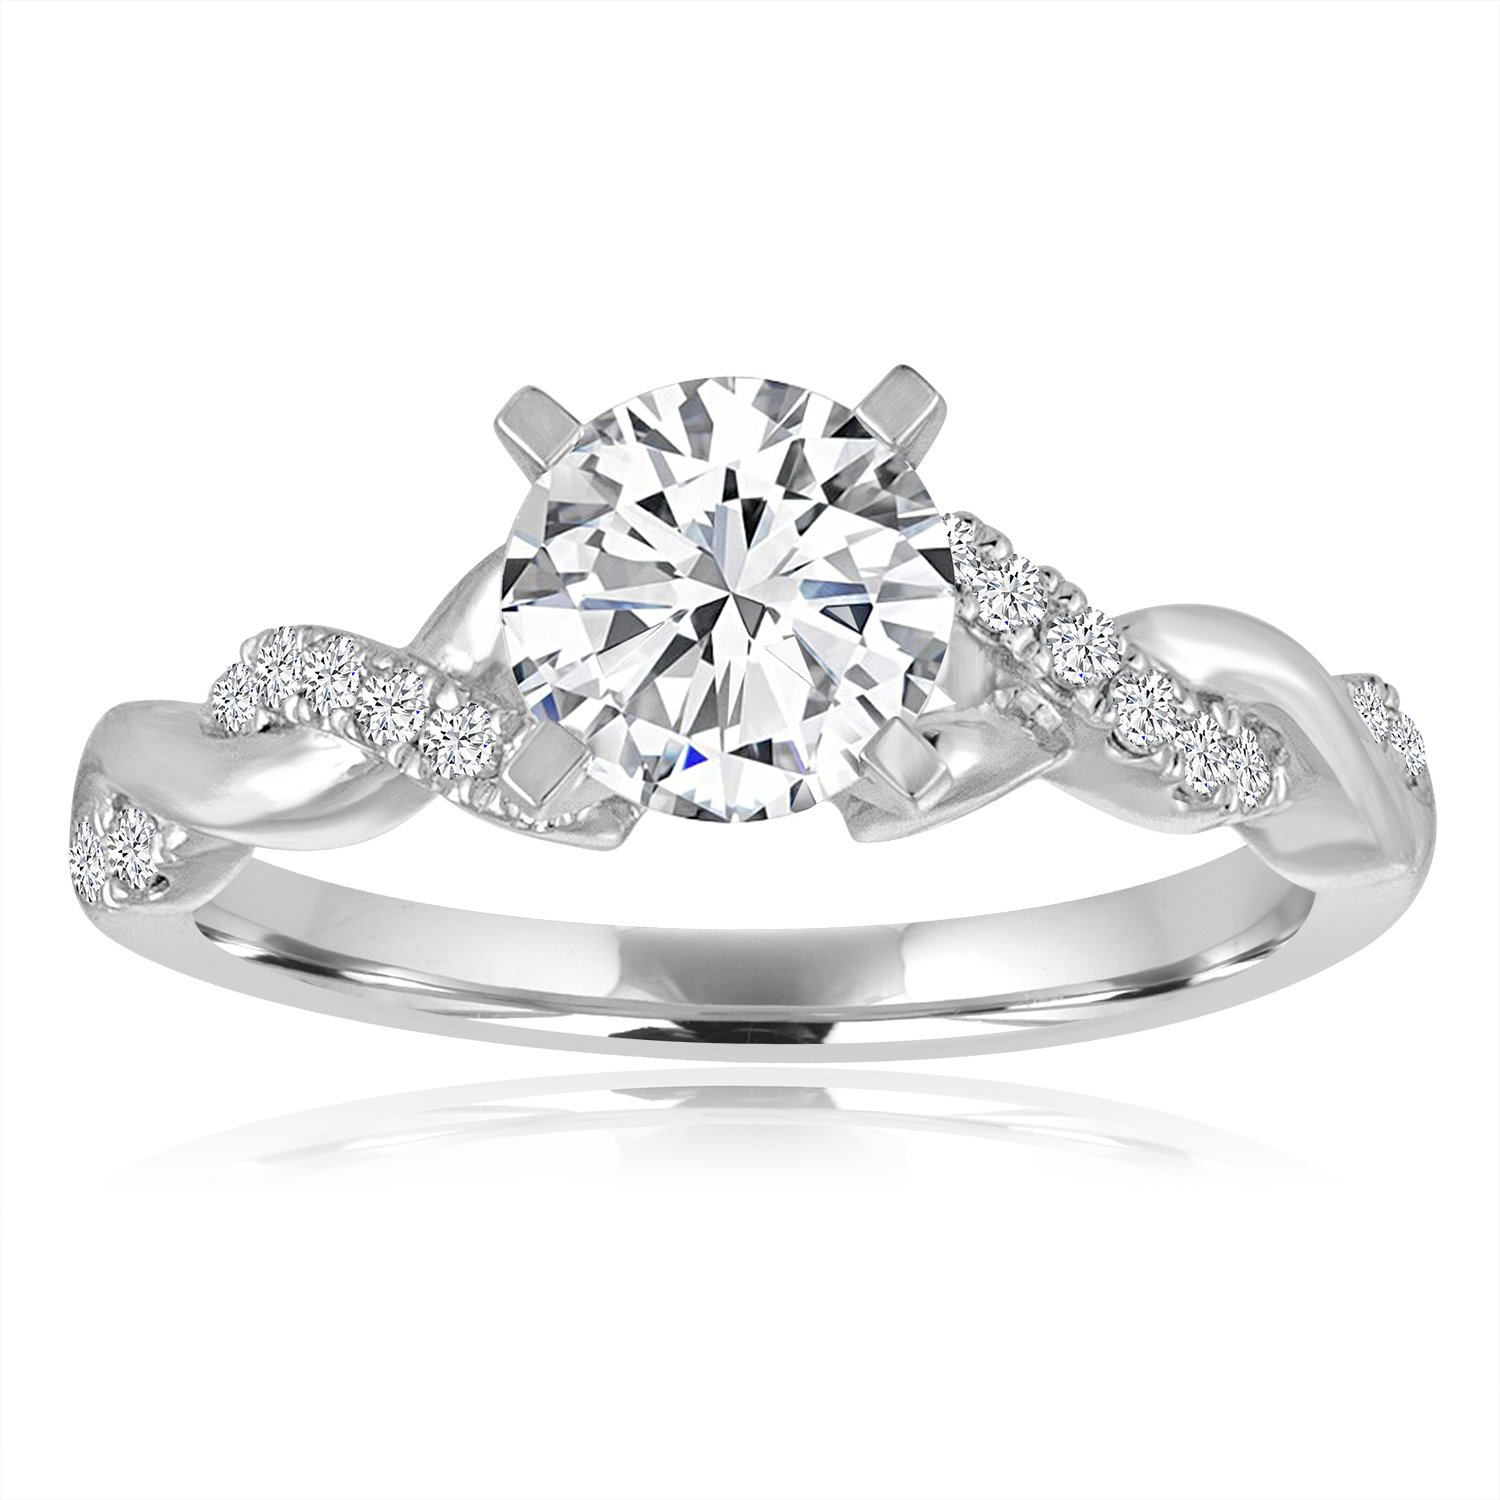 a3608387326 Arthurs Collection Twist White Gold Diamond Engagement Ring ...